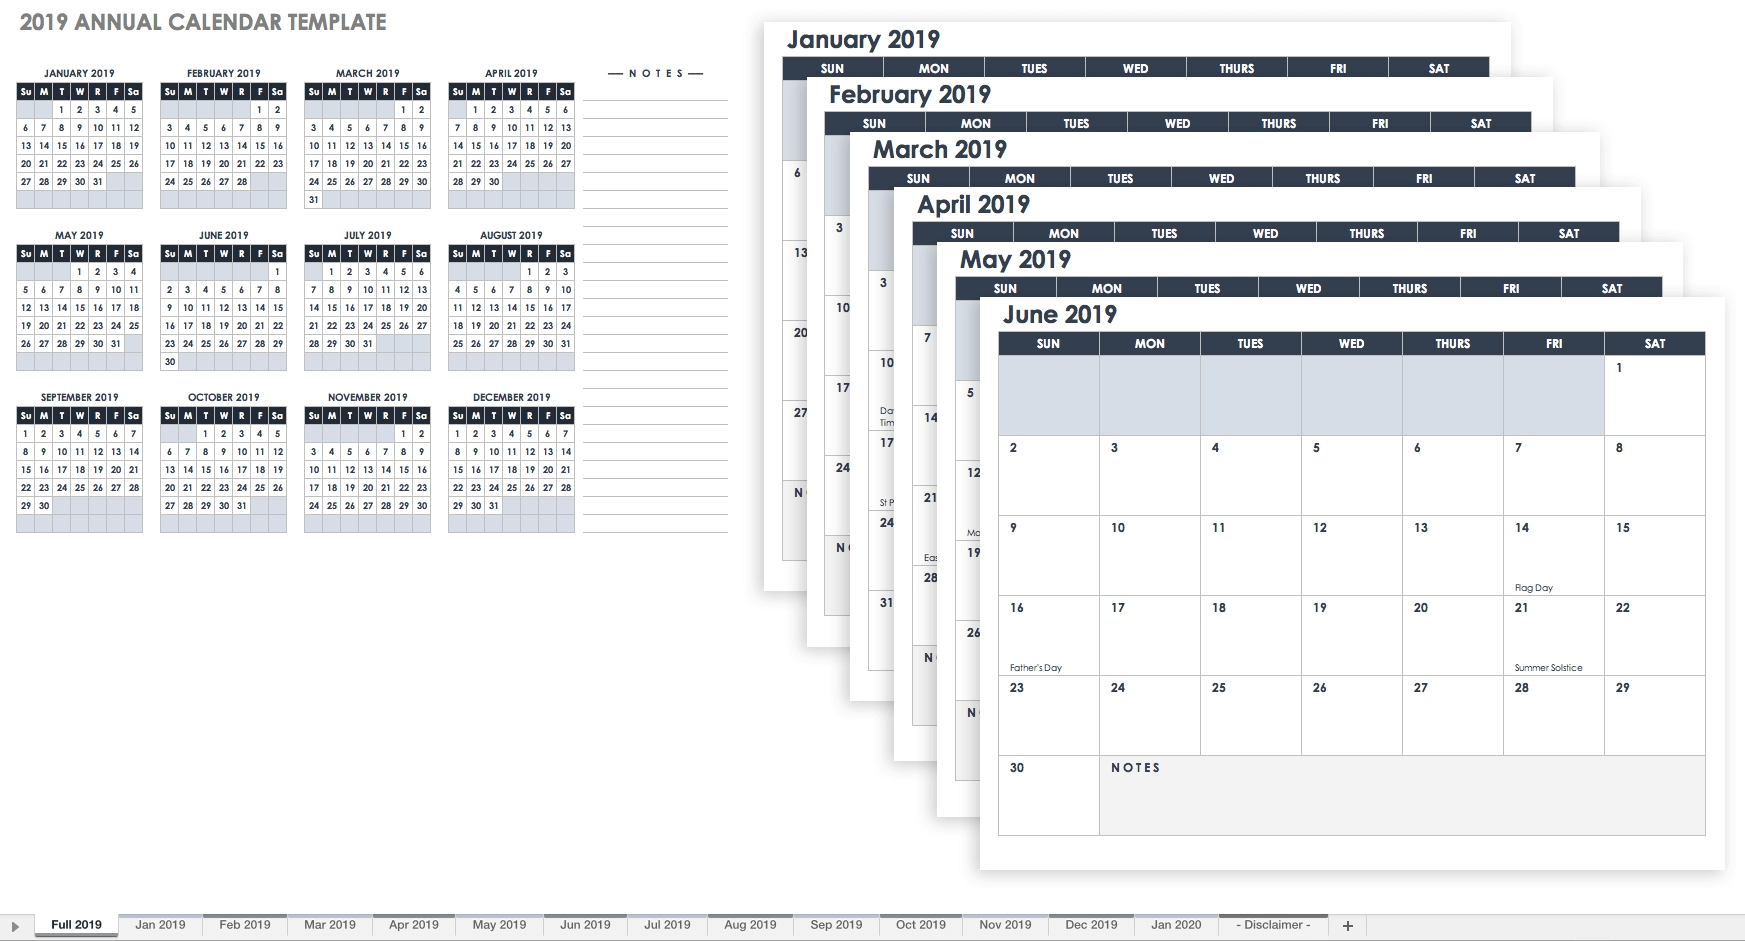 15 Free Monthly Calendar Templates | Smartsheet within Printable Year Calendar 2019 - 2020 With Space To Write